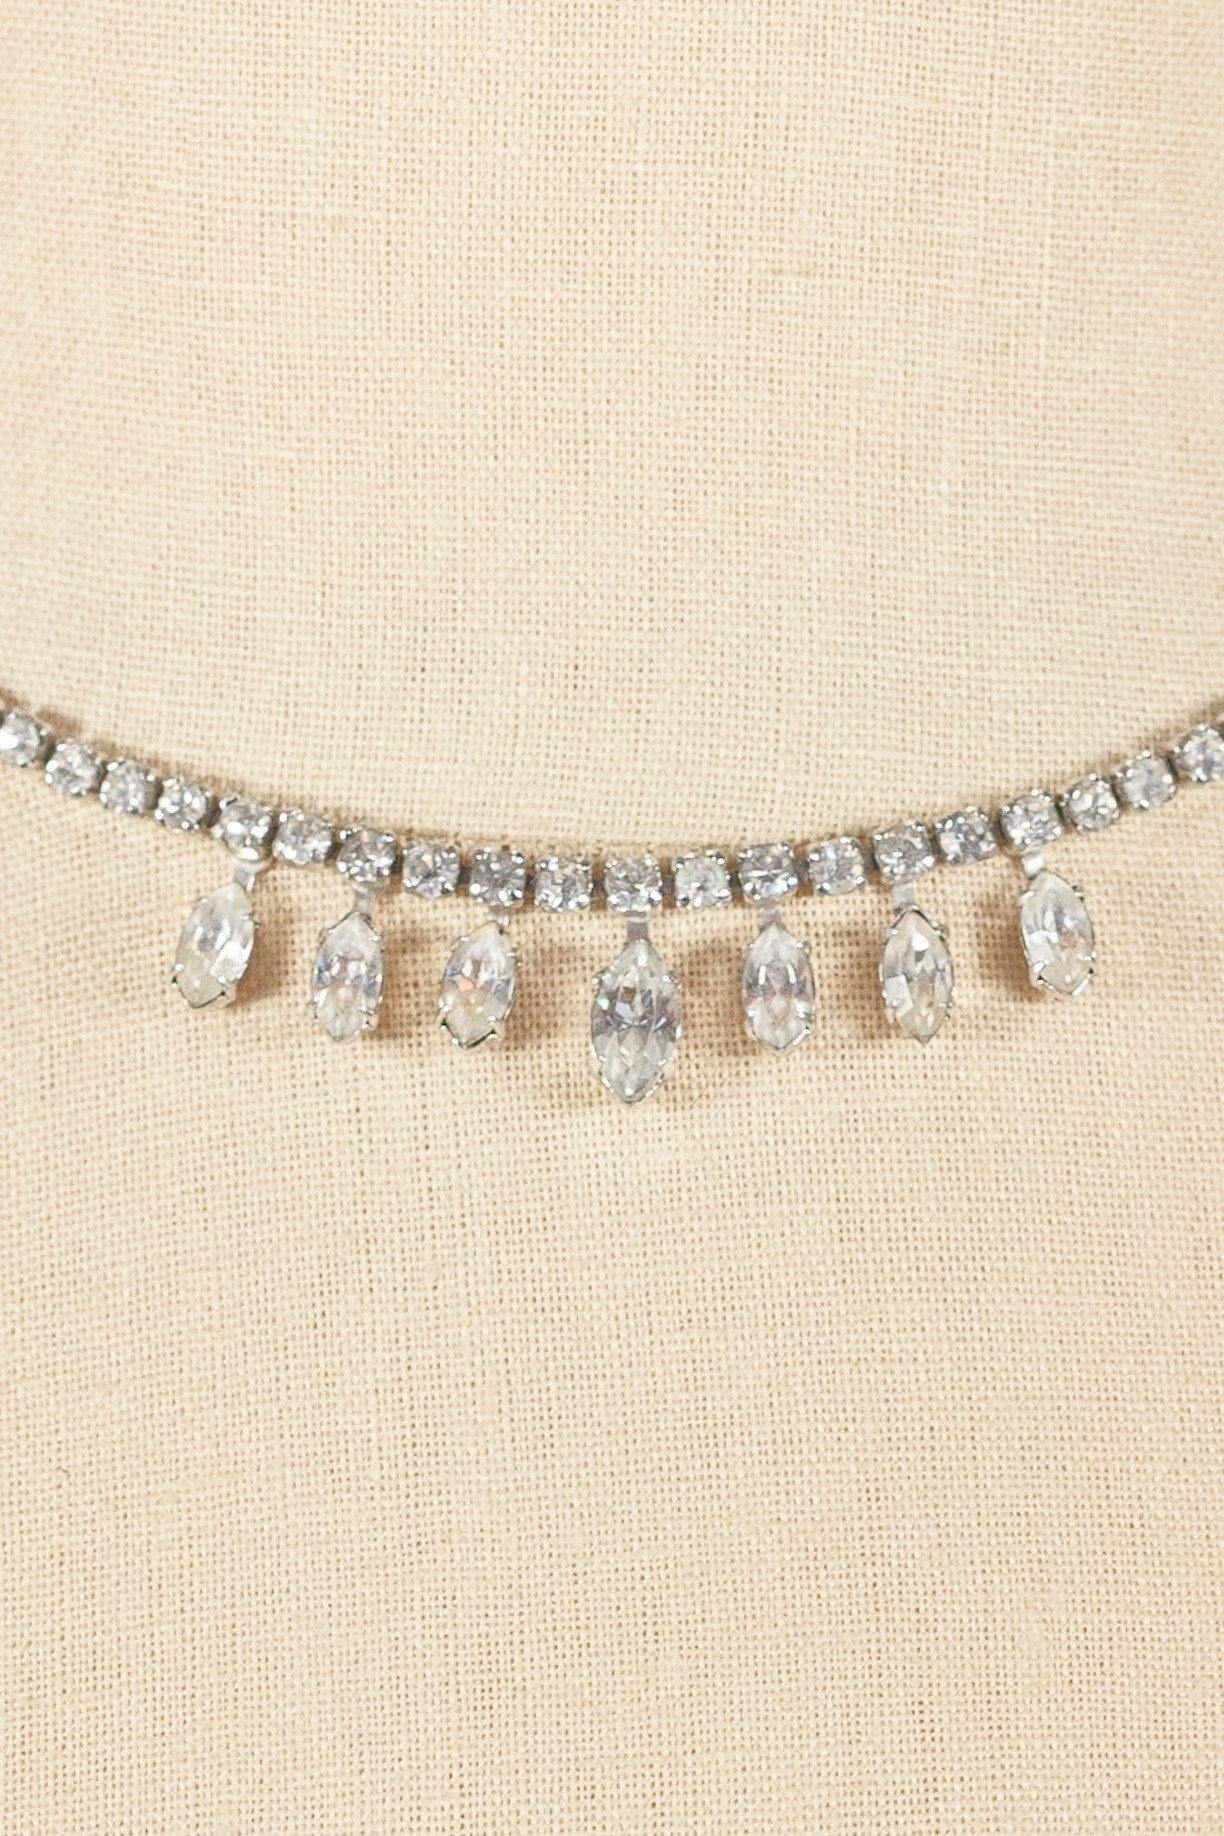 50's__Kramer__Simple Rhinestone Necklace